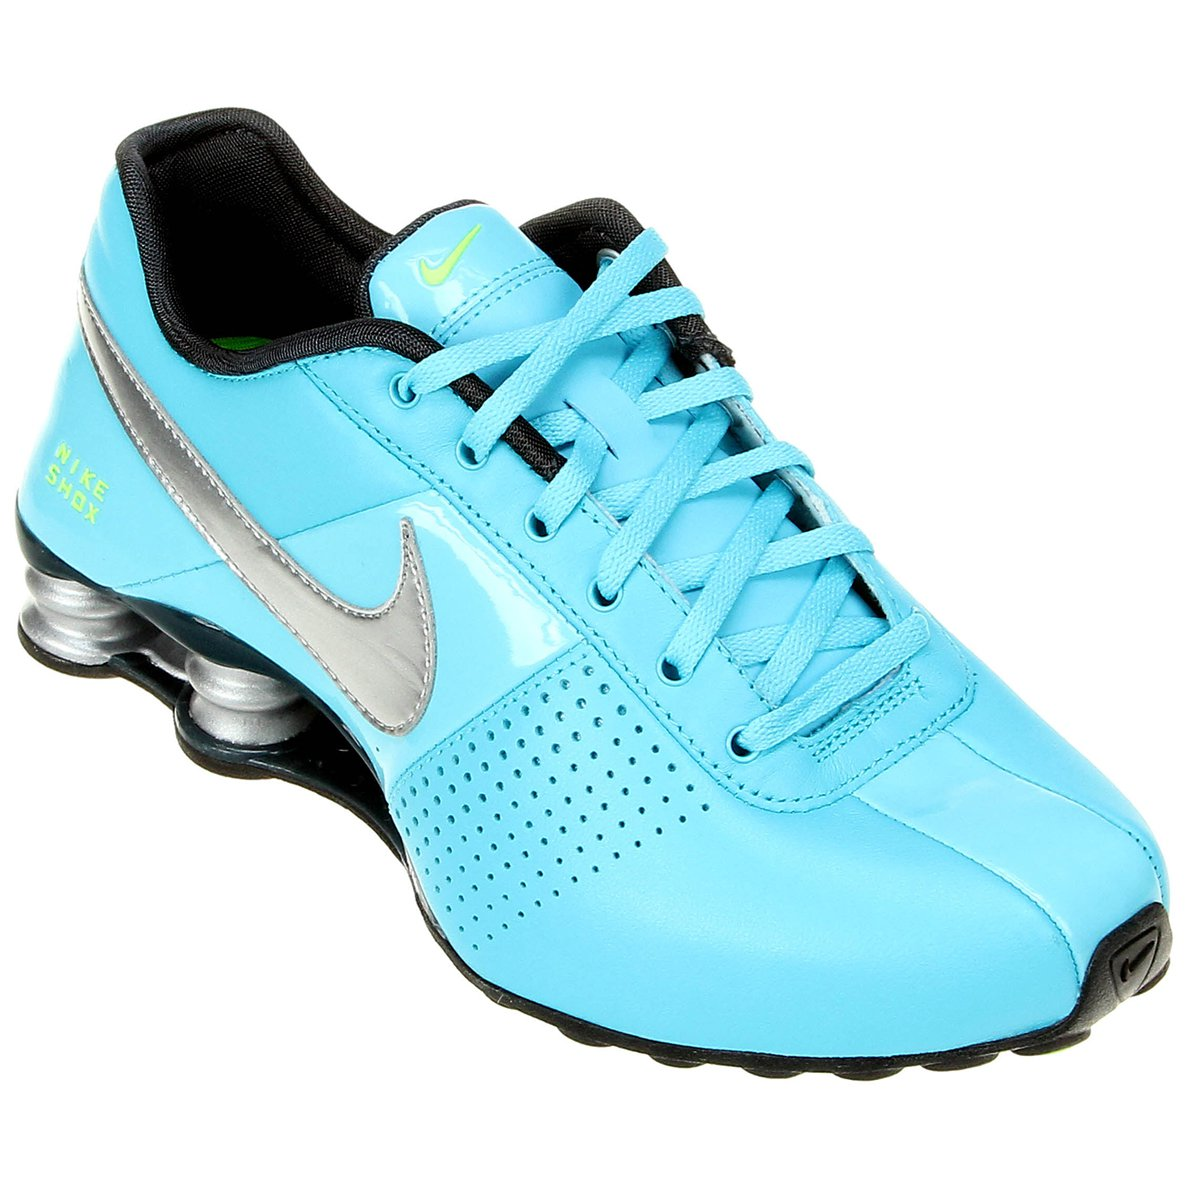 521bb4d7753 ... cheapest tênis nike shox deliver azul piscina ee325 6d615